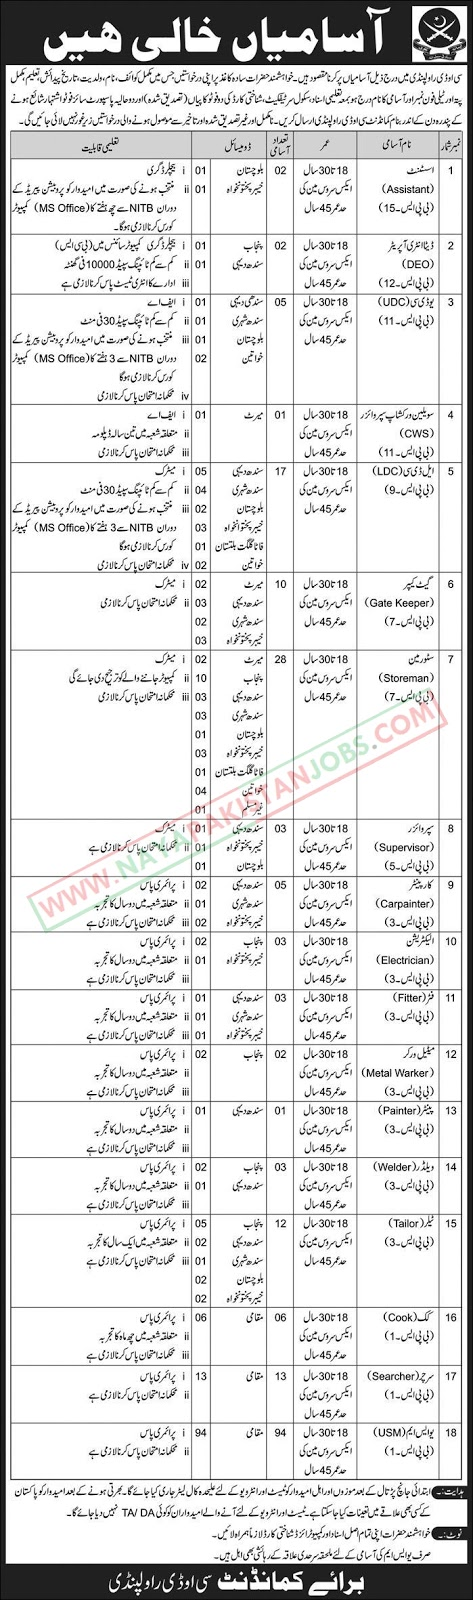 Pak Army Jobs, COD RAWALPINDI Jobs, pak army cod rawalpindi jobs 2019, pak army cod jobs February 2019